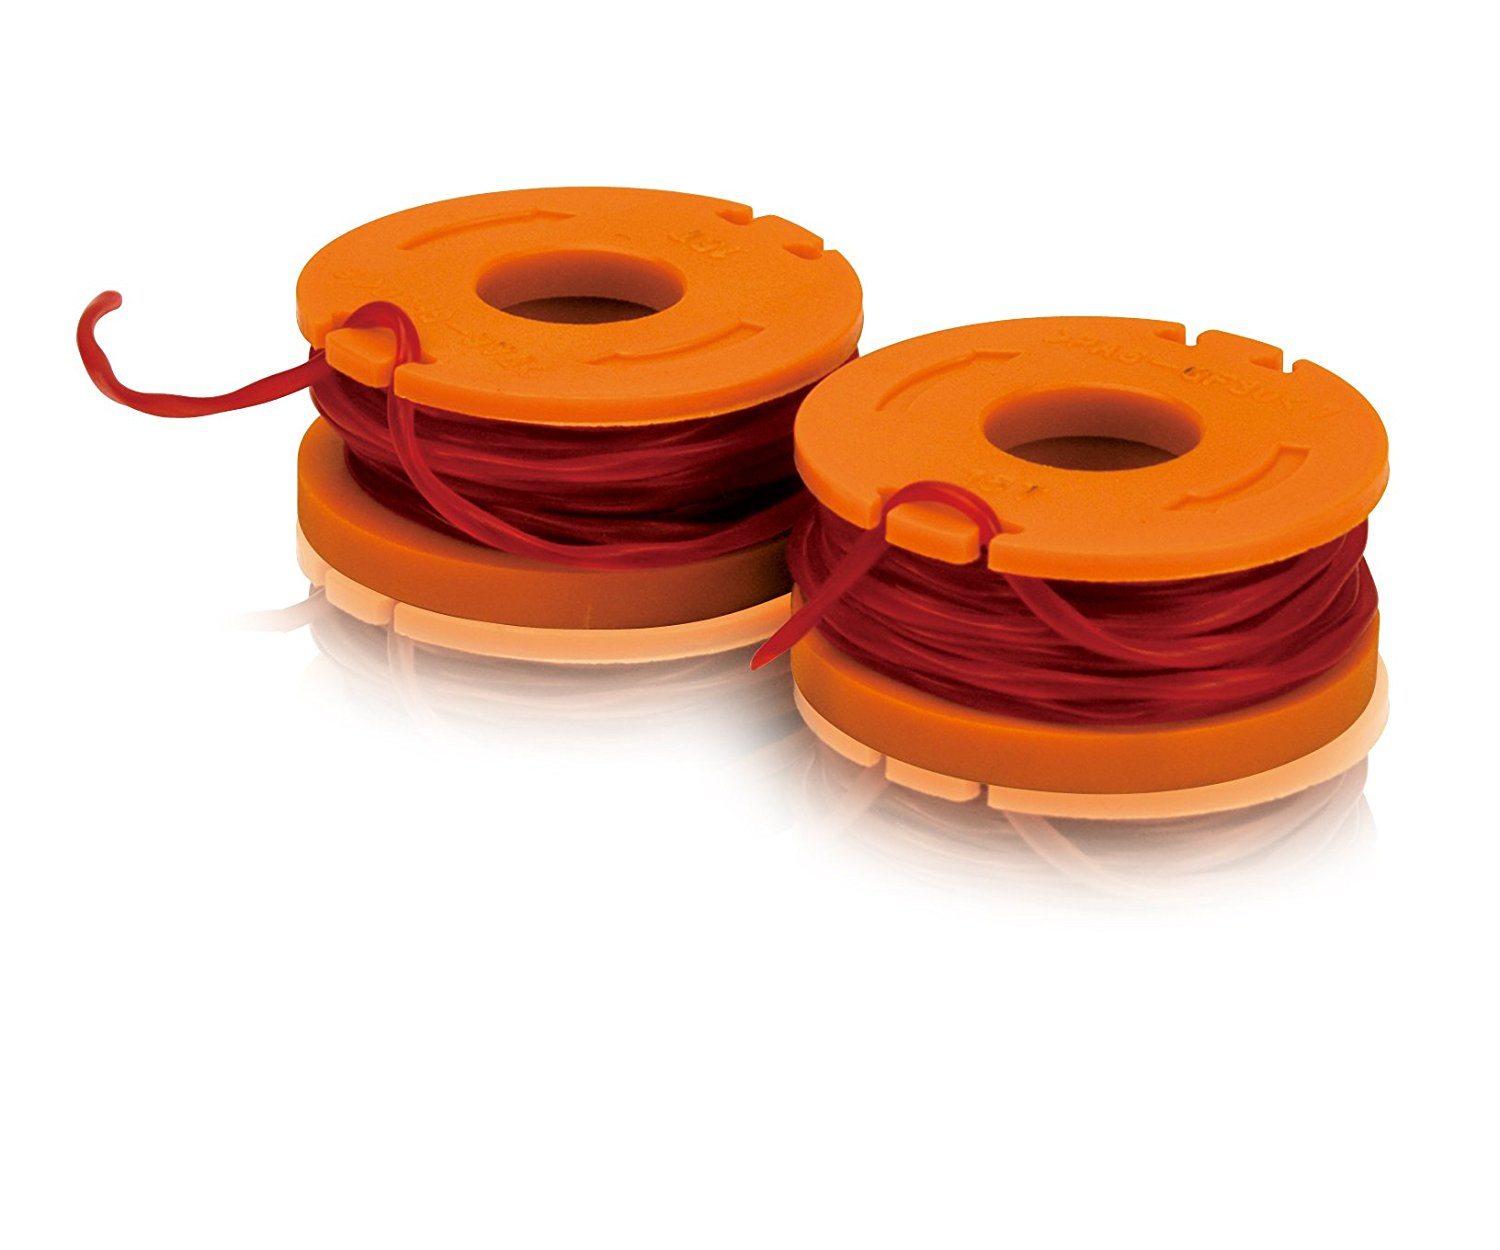 WA0004 Replacement 10-Foot Grass Trimmer Edger Spool Line 2-Pack for WG150s, WG151s,... by